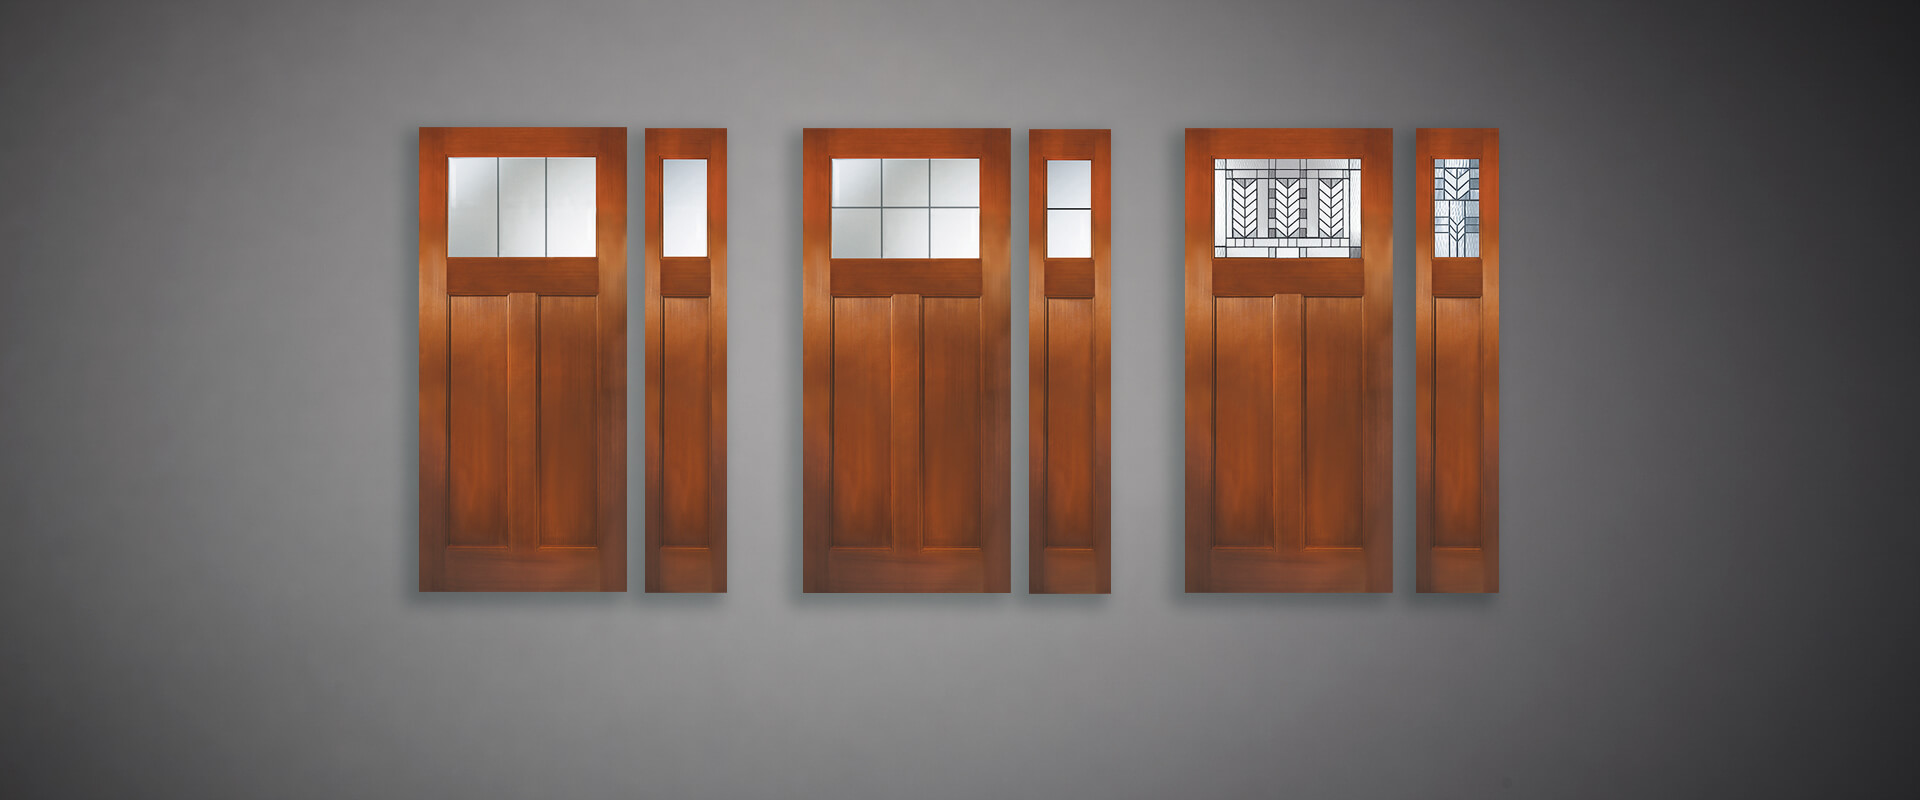 Craftsman Fir Fiberglass Doors Kolbe Windows Amp Doors